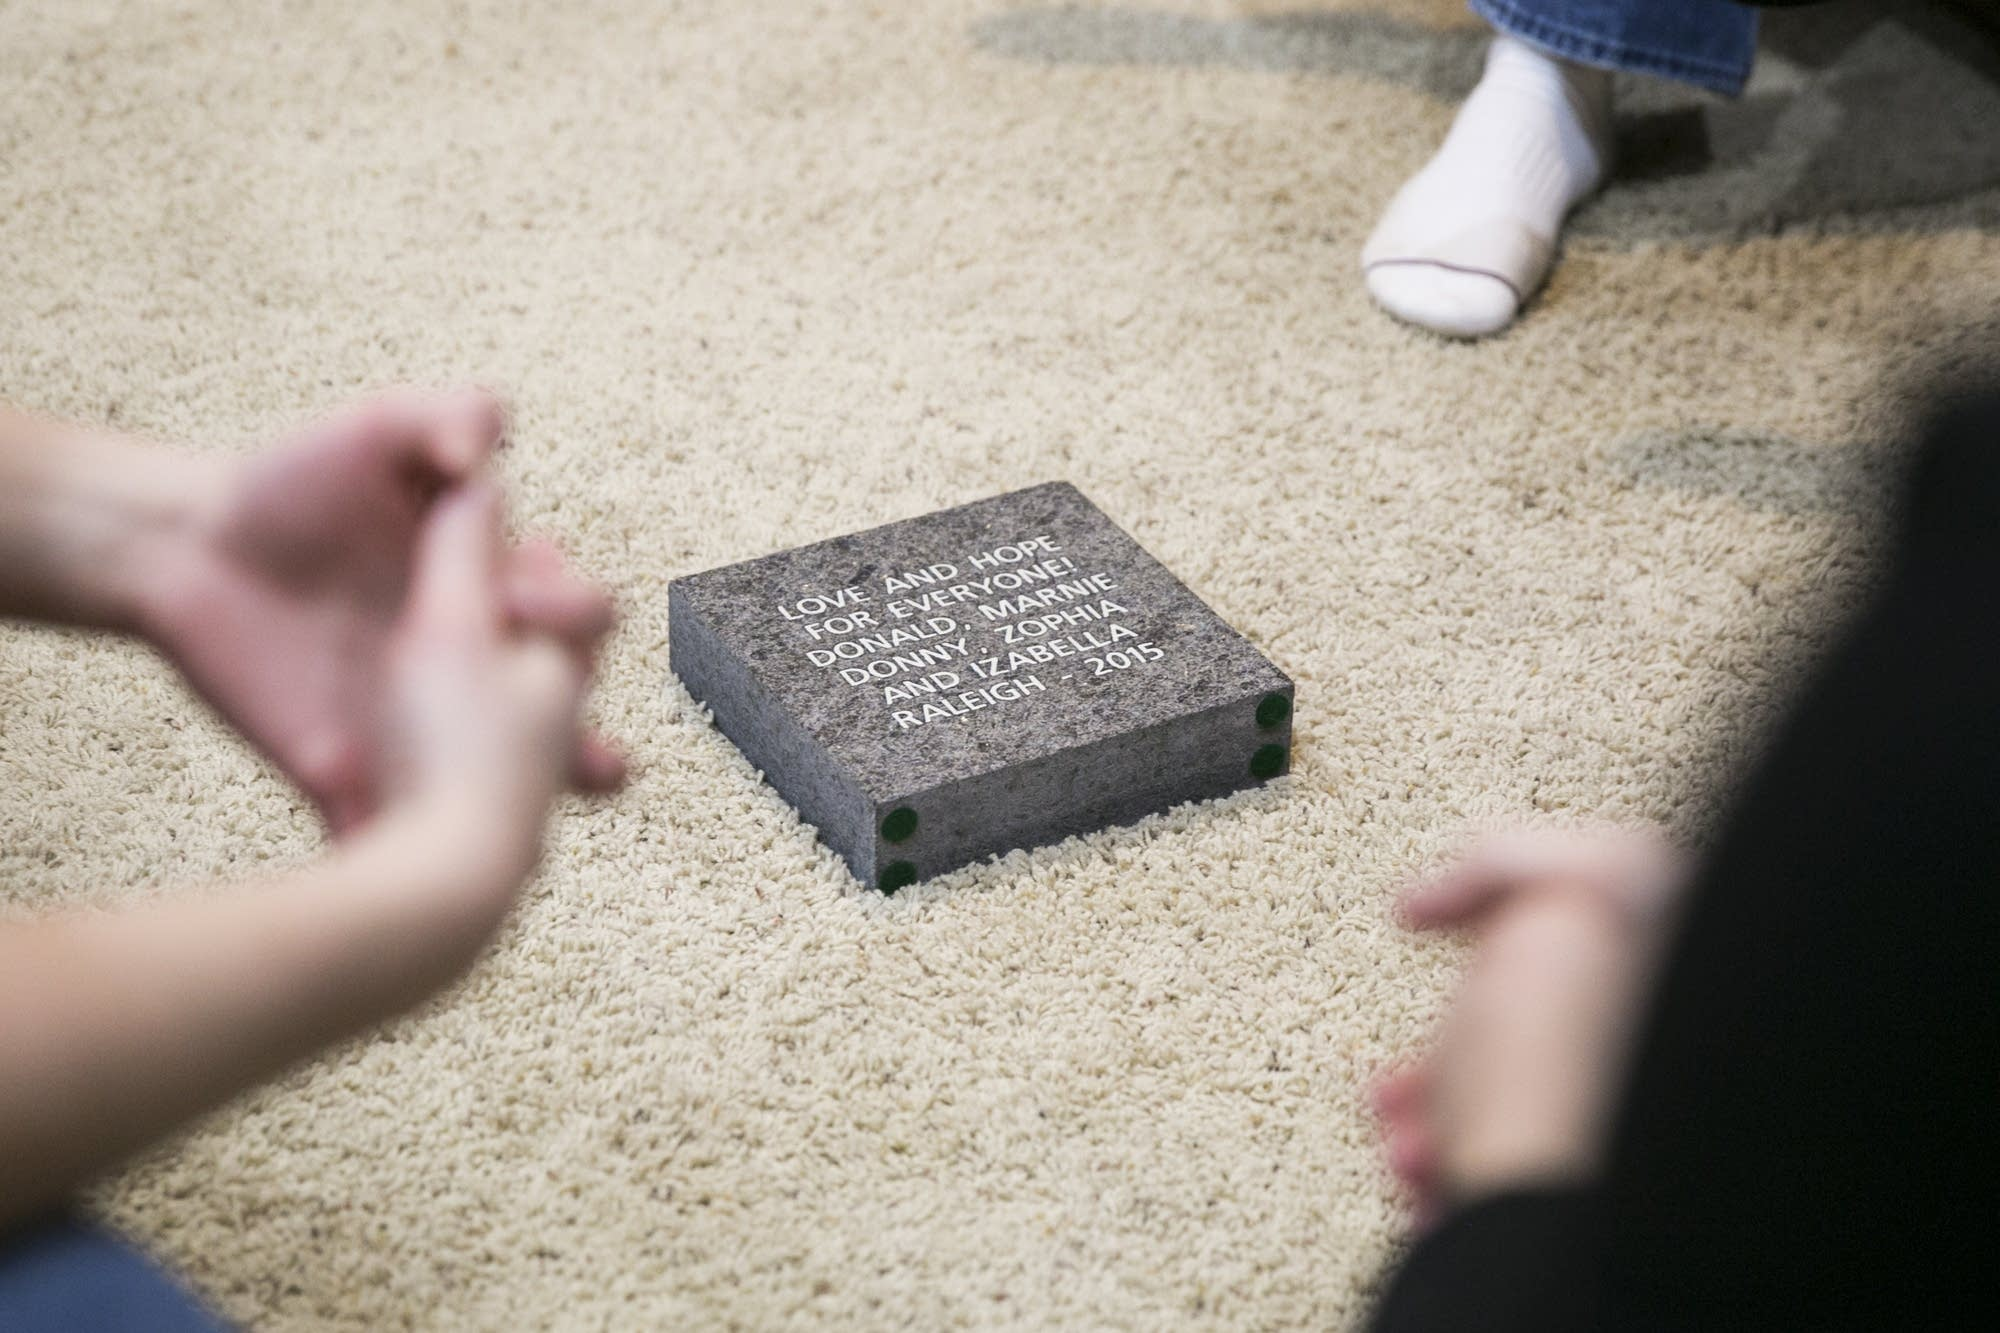 The Raleigh family's engraved brick.